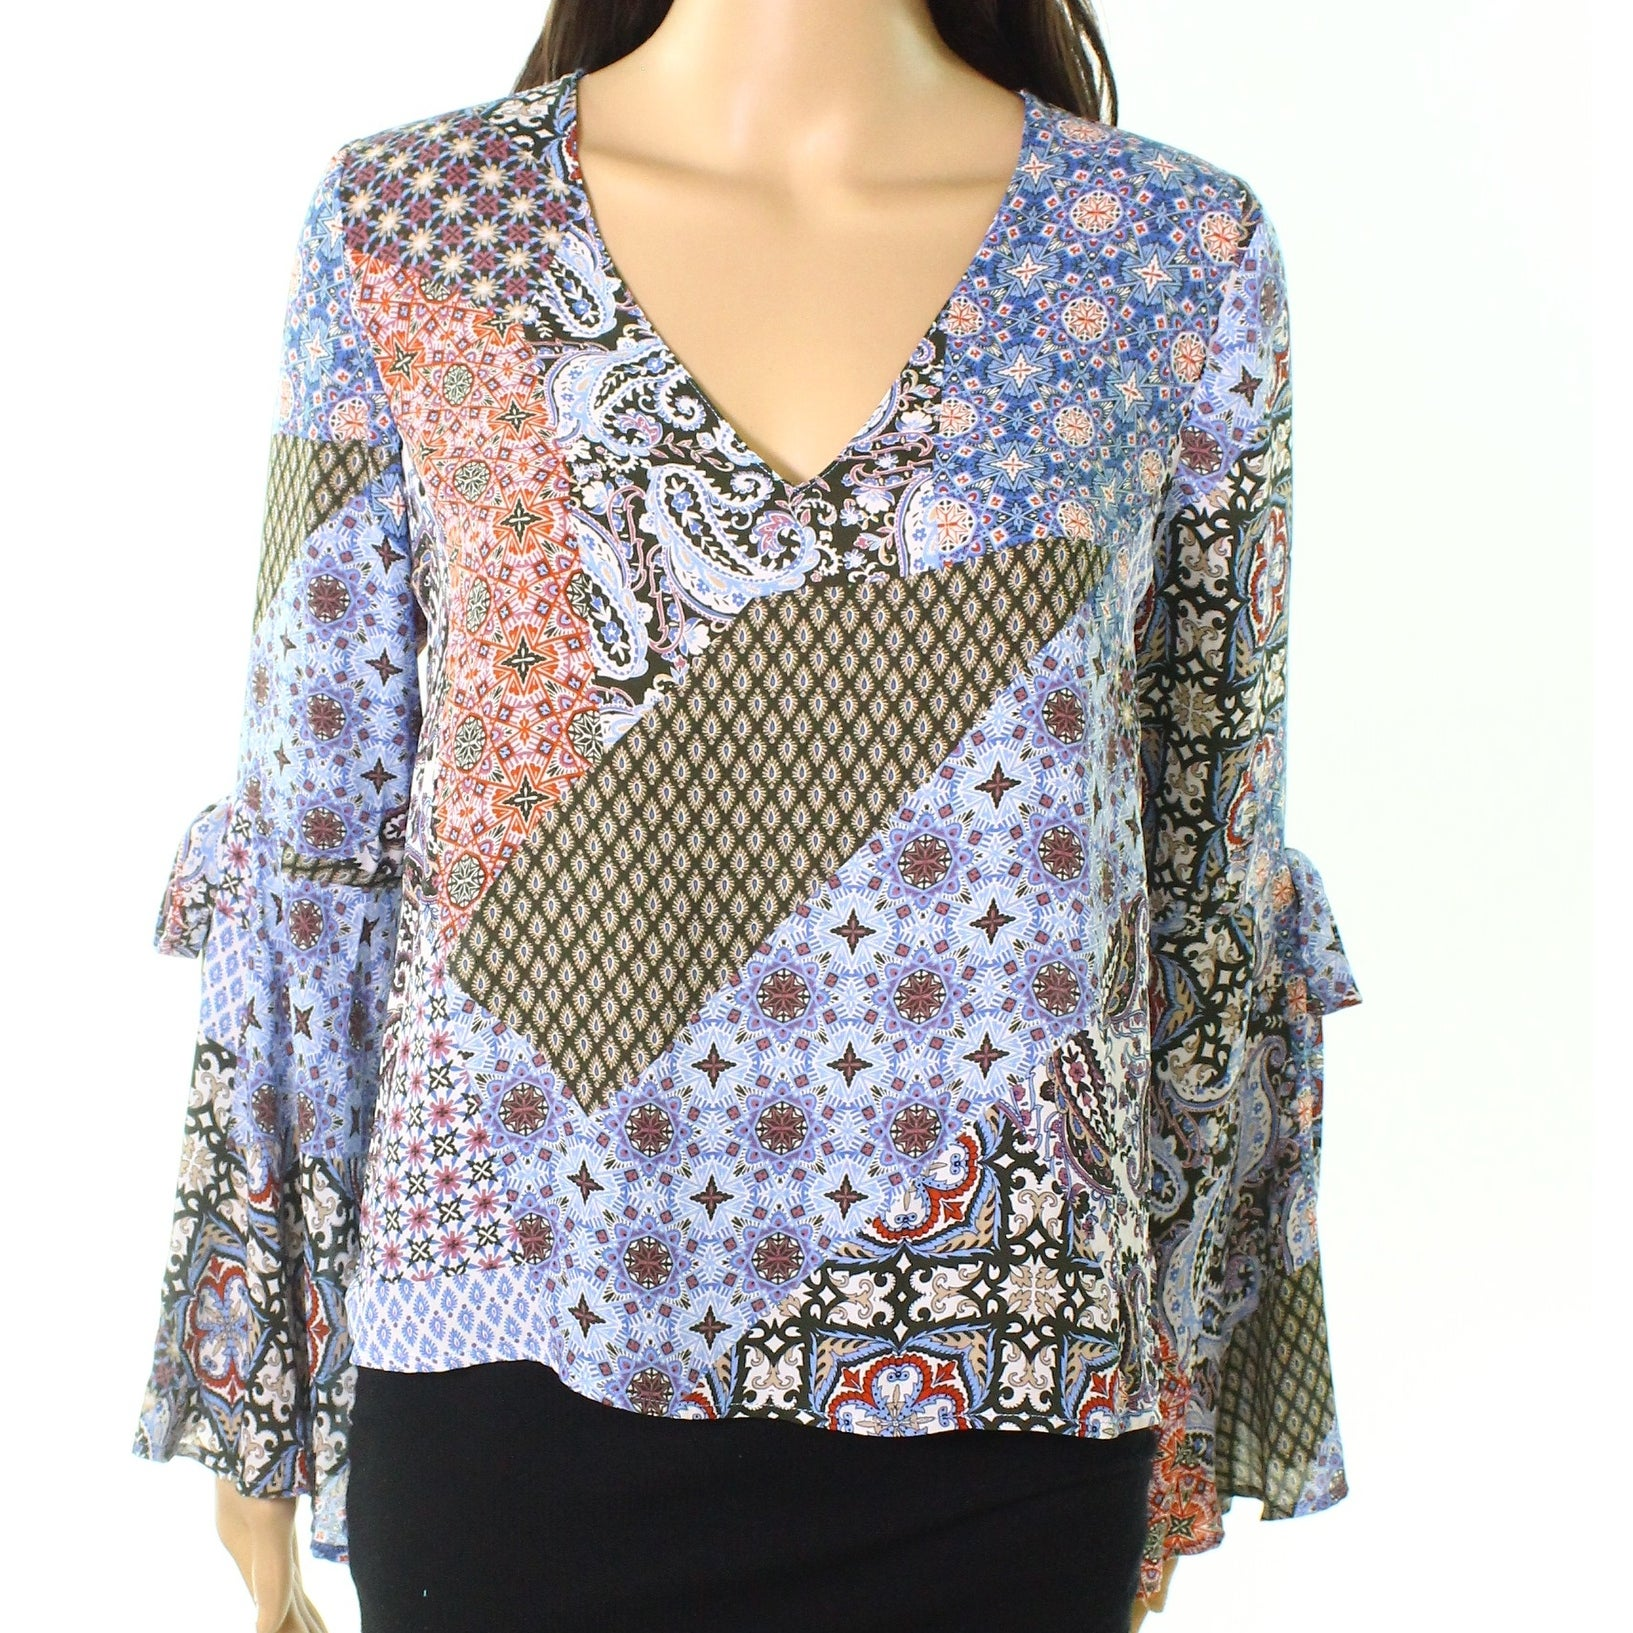 6f77c9a9 Lush Tops | Find Great Women's Clothing Deals Shopping at Overstock